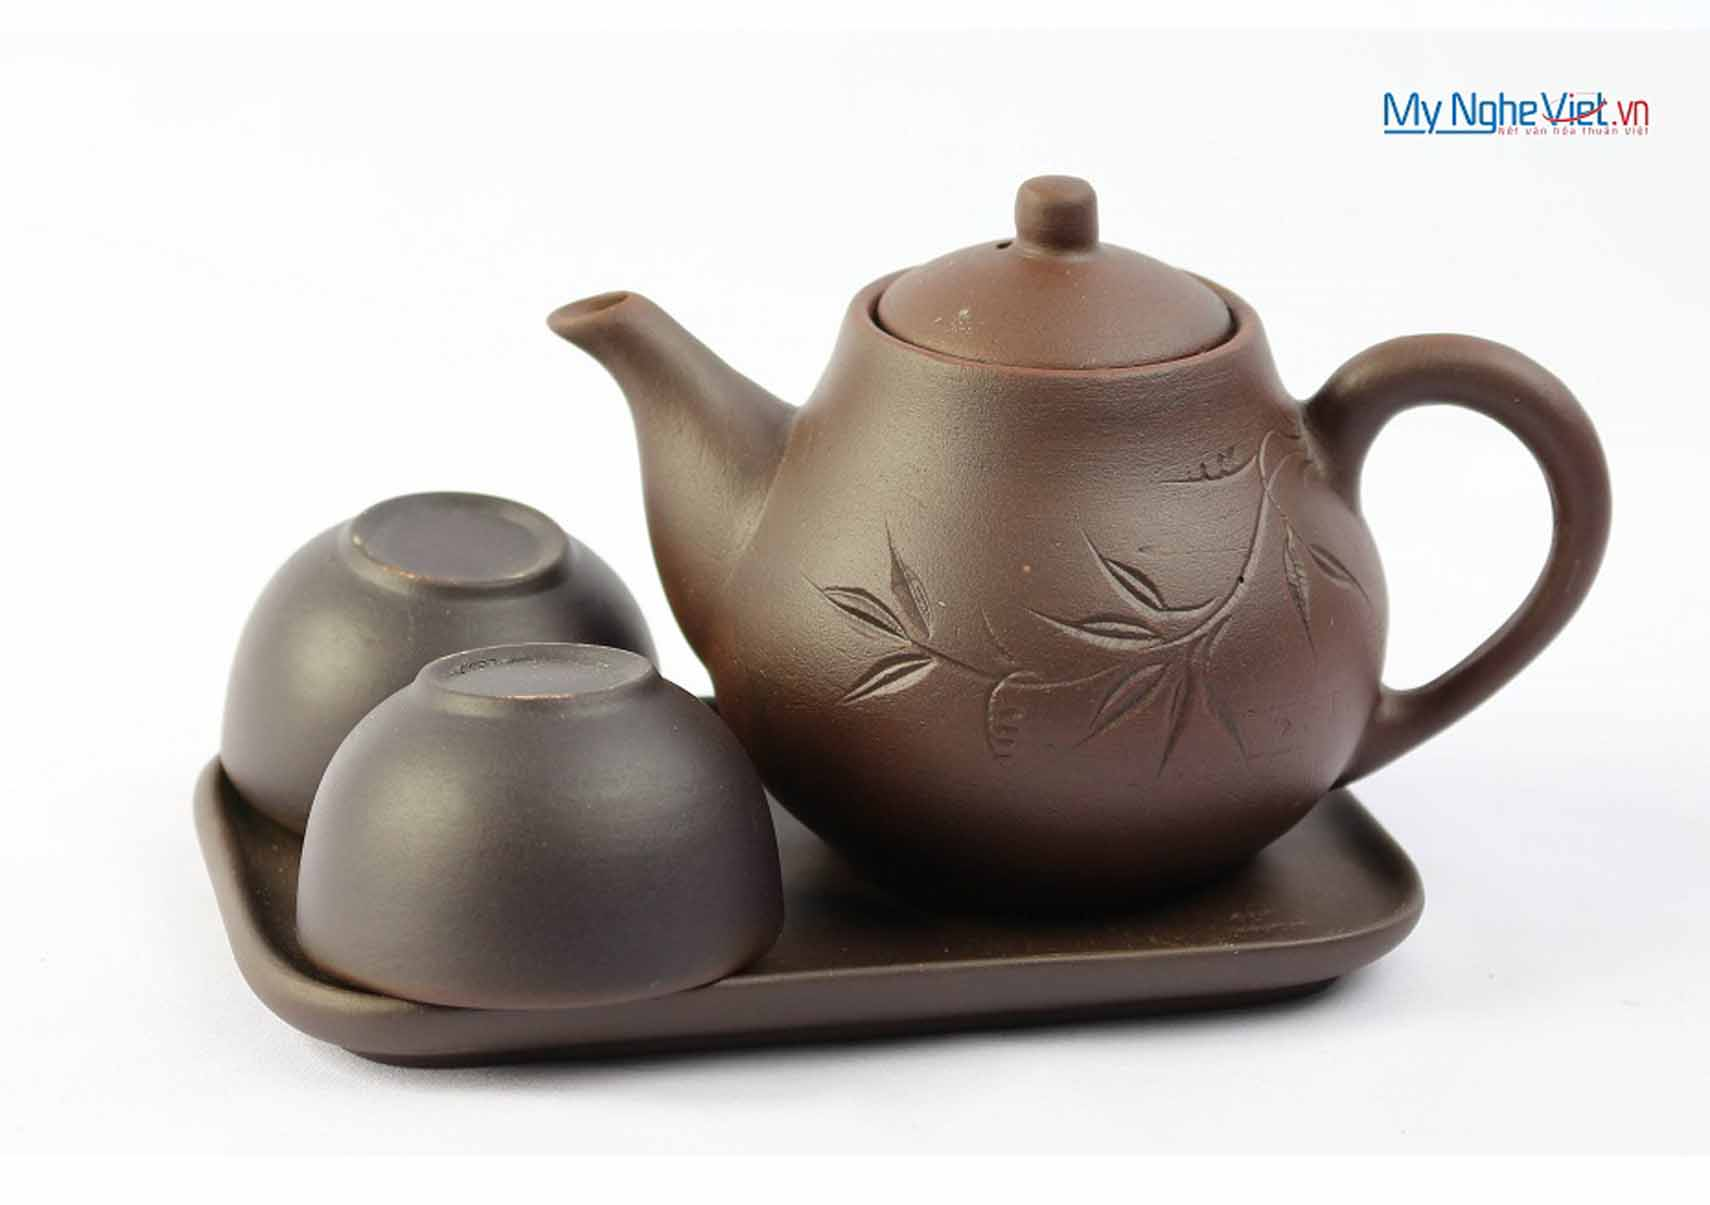 The double – cup ceramic tea set MNV-TS048